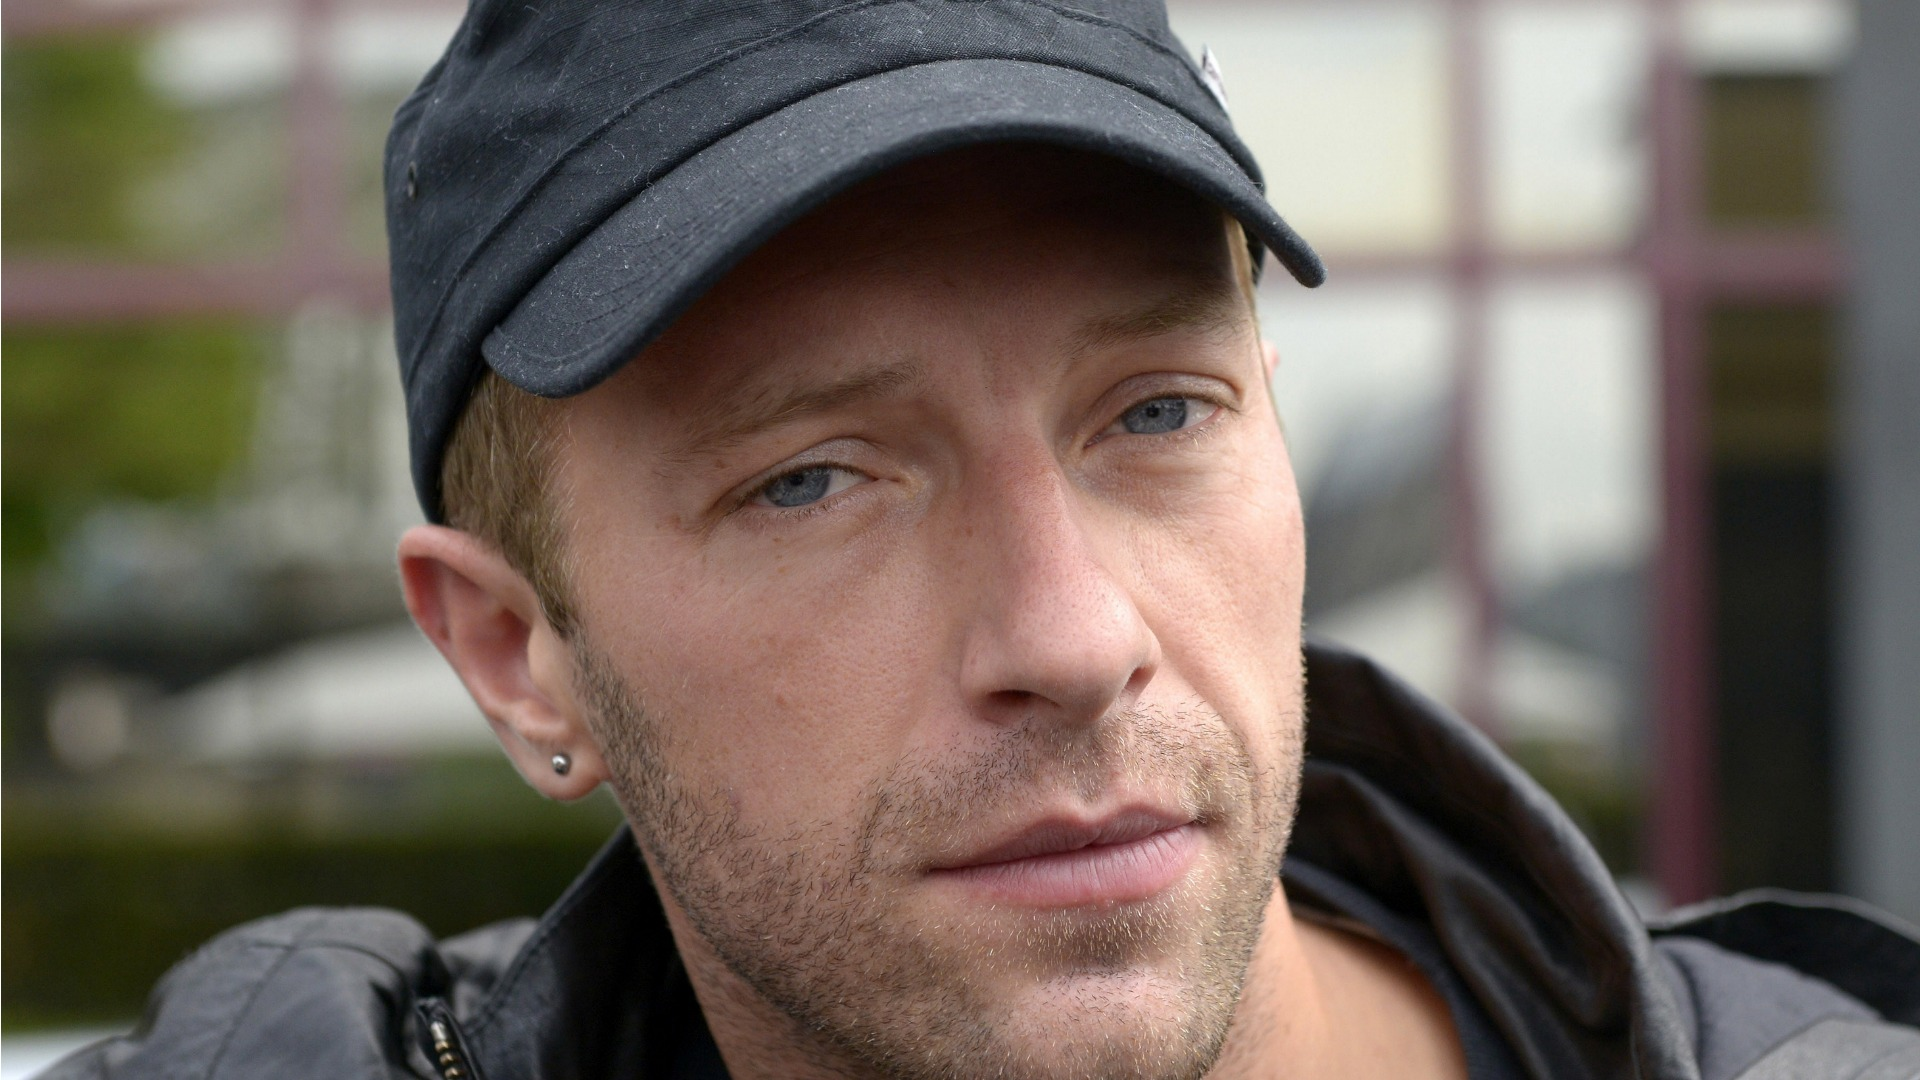 chris martin dating 2014 It's official: chris martin really does have a thing for blonde, talented and photogenic actresses since 'consciously uncoupling' from oscar-winning star gwyneth paltrow, his wife of 10 years, in march 2014, he swiftly moved on to fellow oscar-winner jennifer lawrence despite never being .